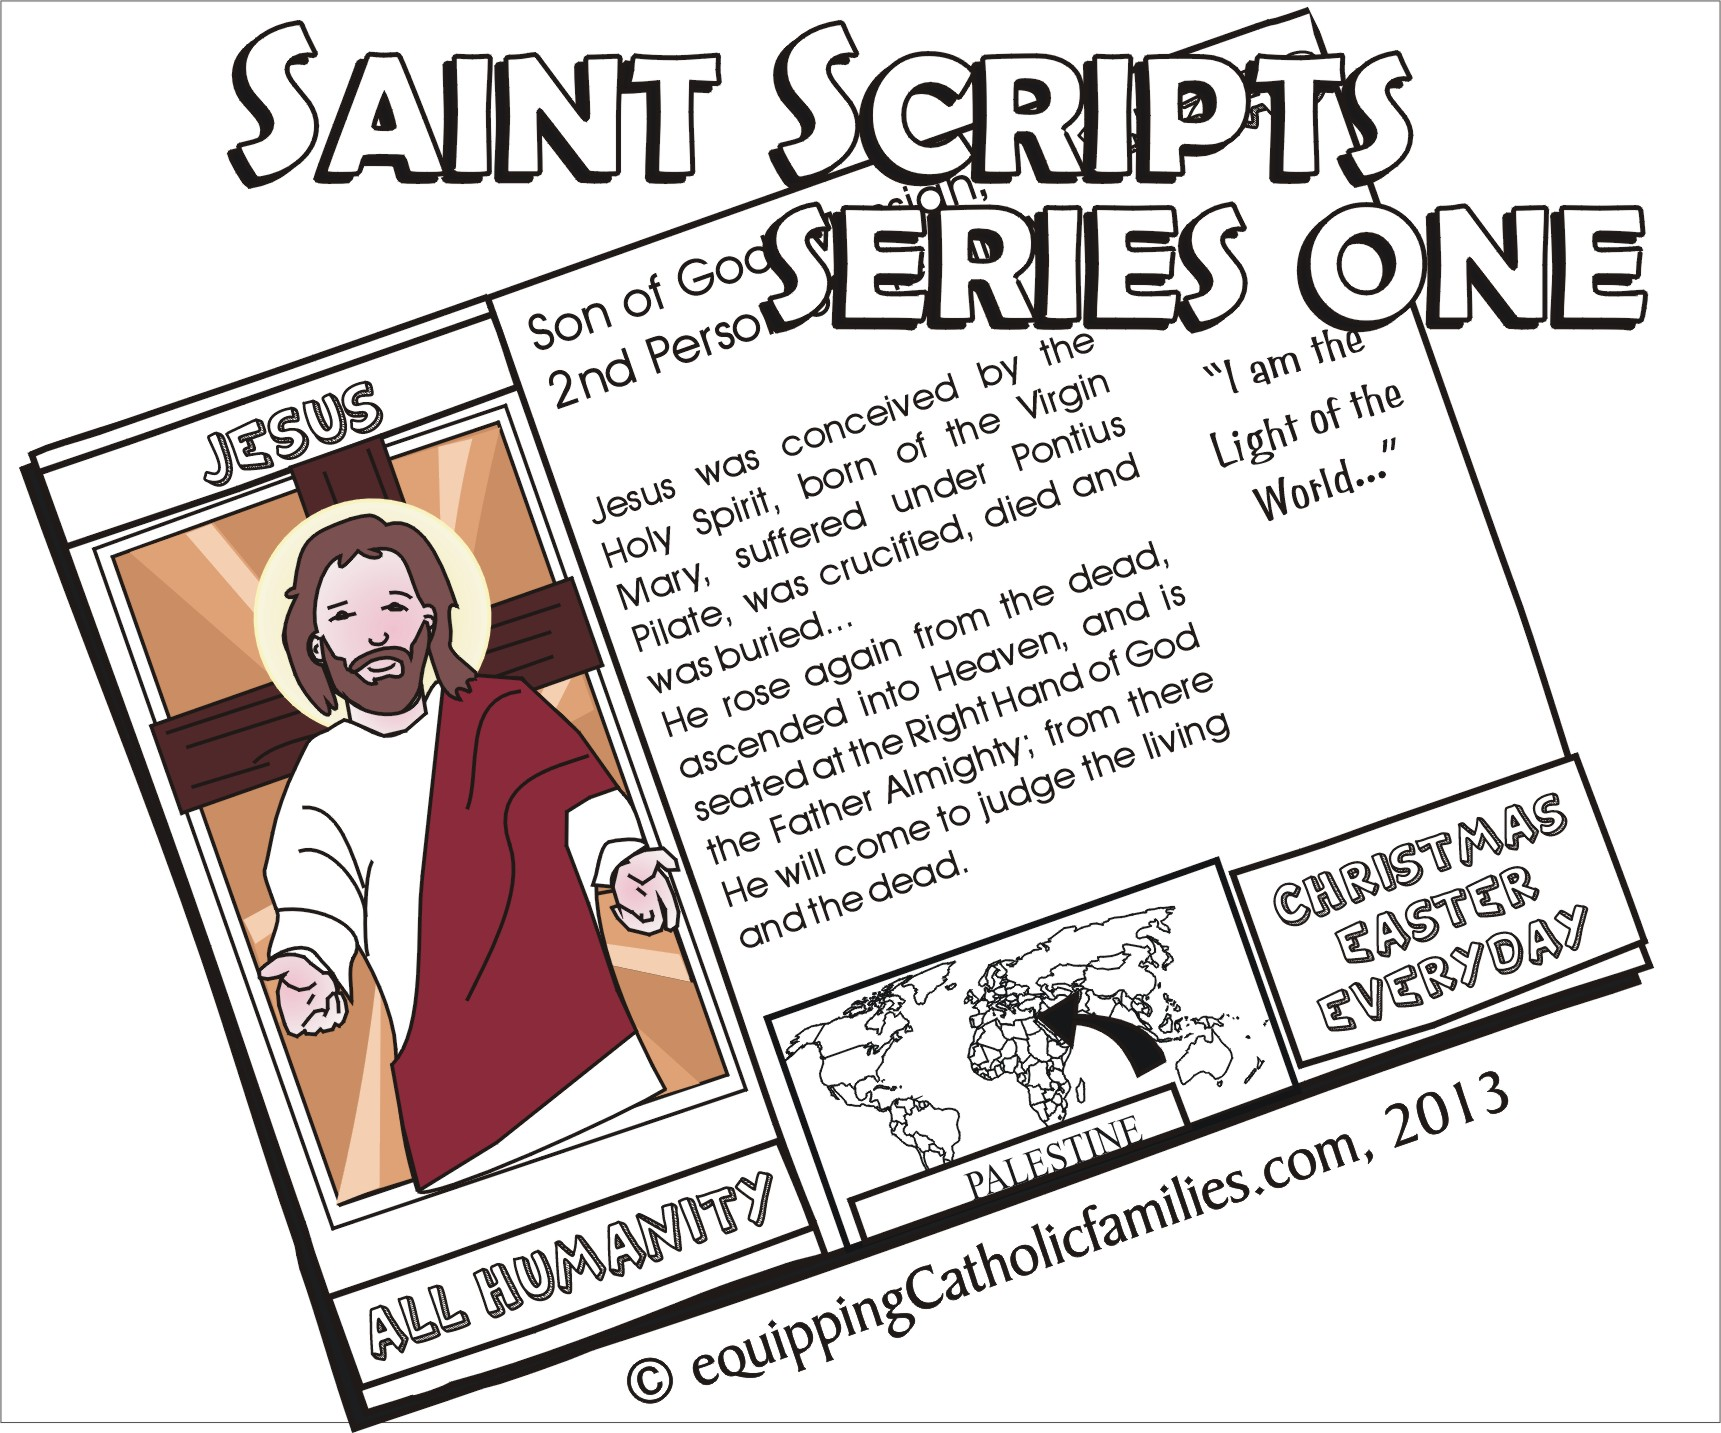 NEW! Saints Scripts Cathletics Craft Kit Series!